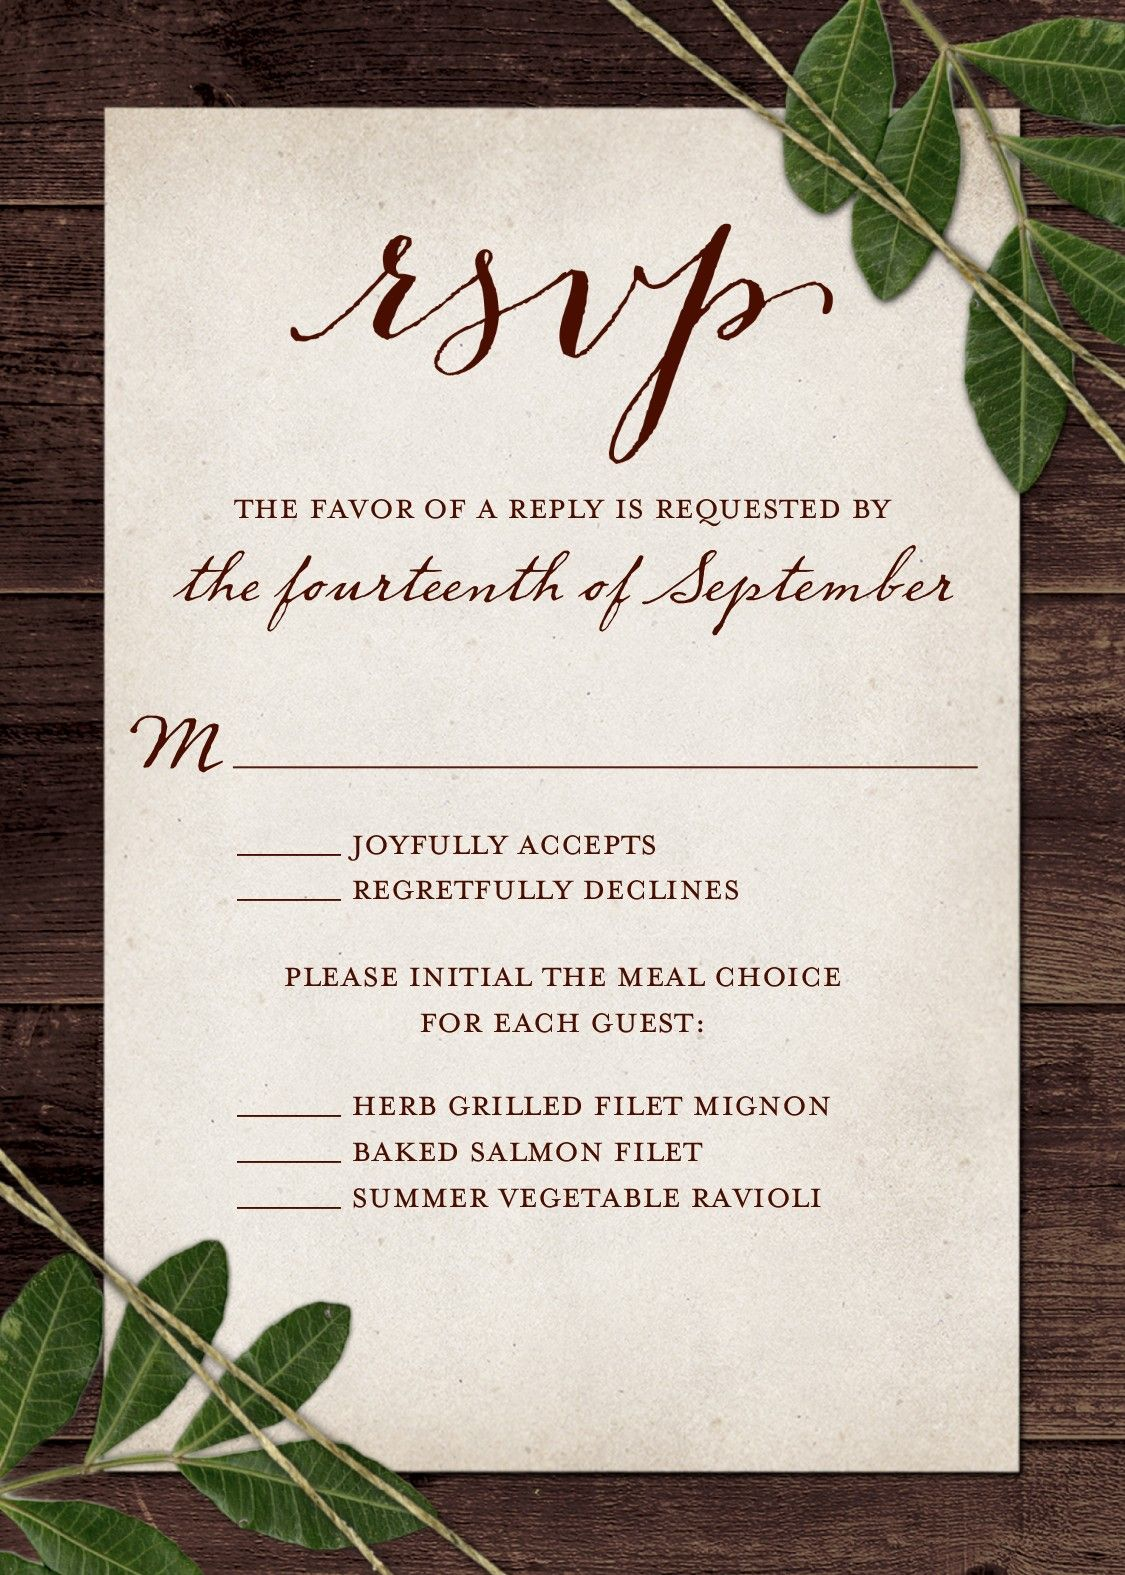 Wedding Rsvp Wording And Card Etiquette 2019 Shutterfly Wedding Response Cards Rsvp Cards Wording Wedding Rsvp Wording